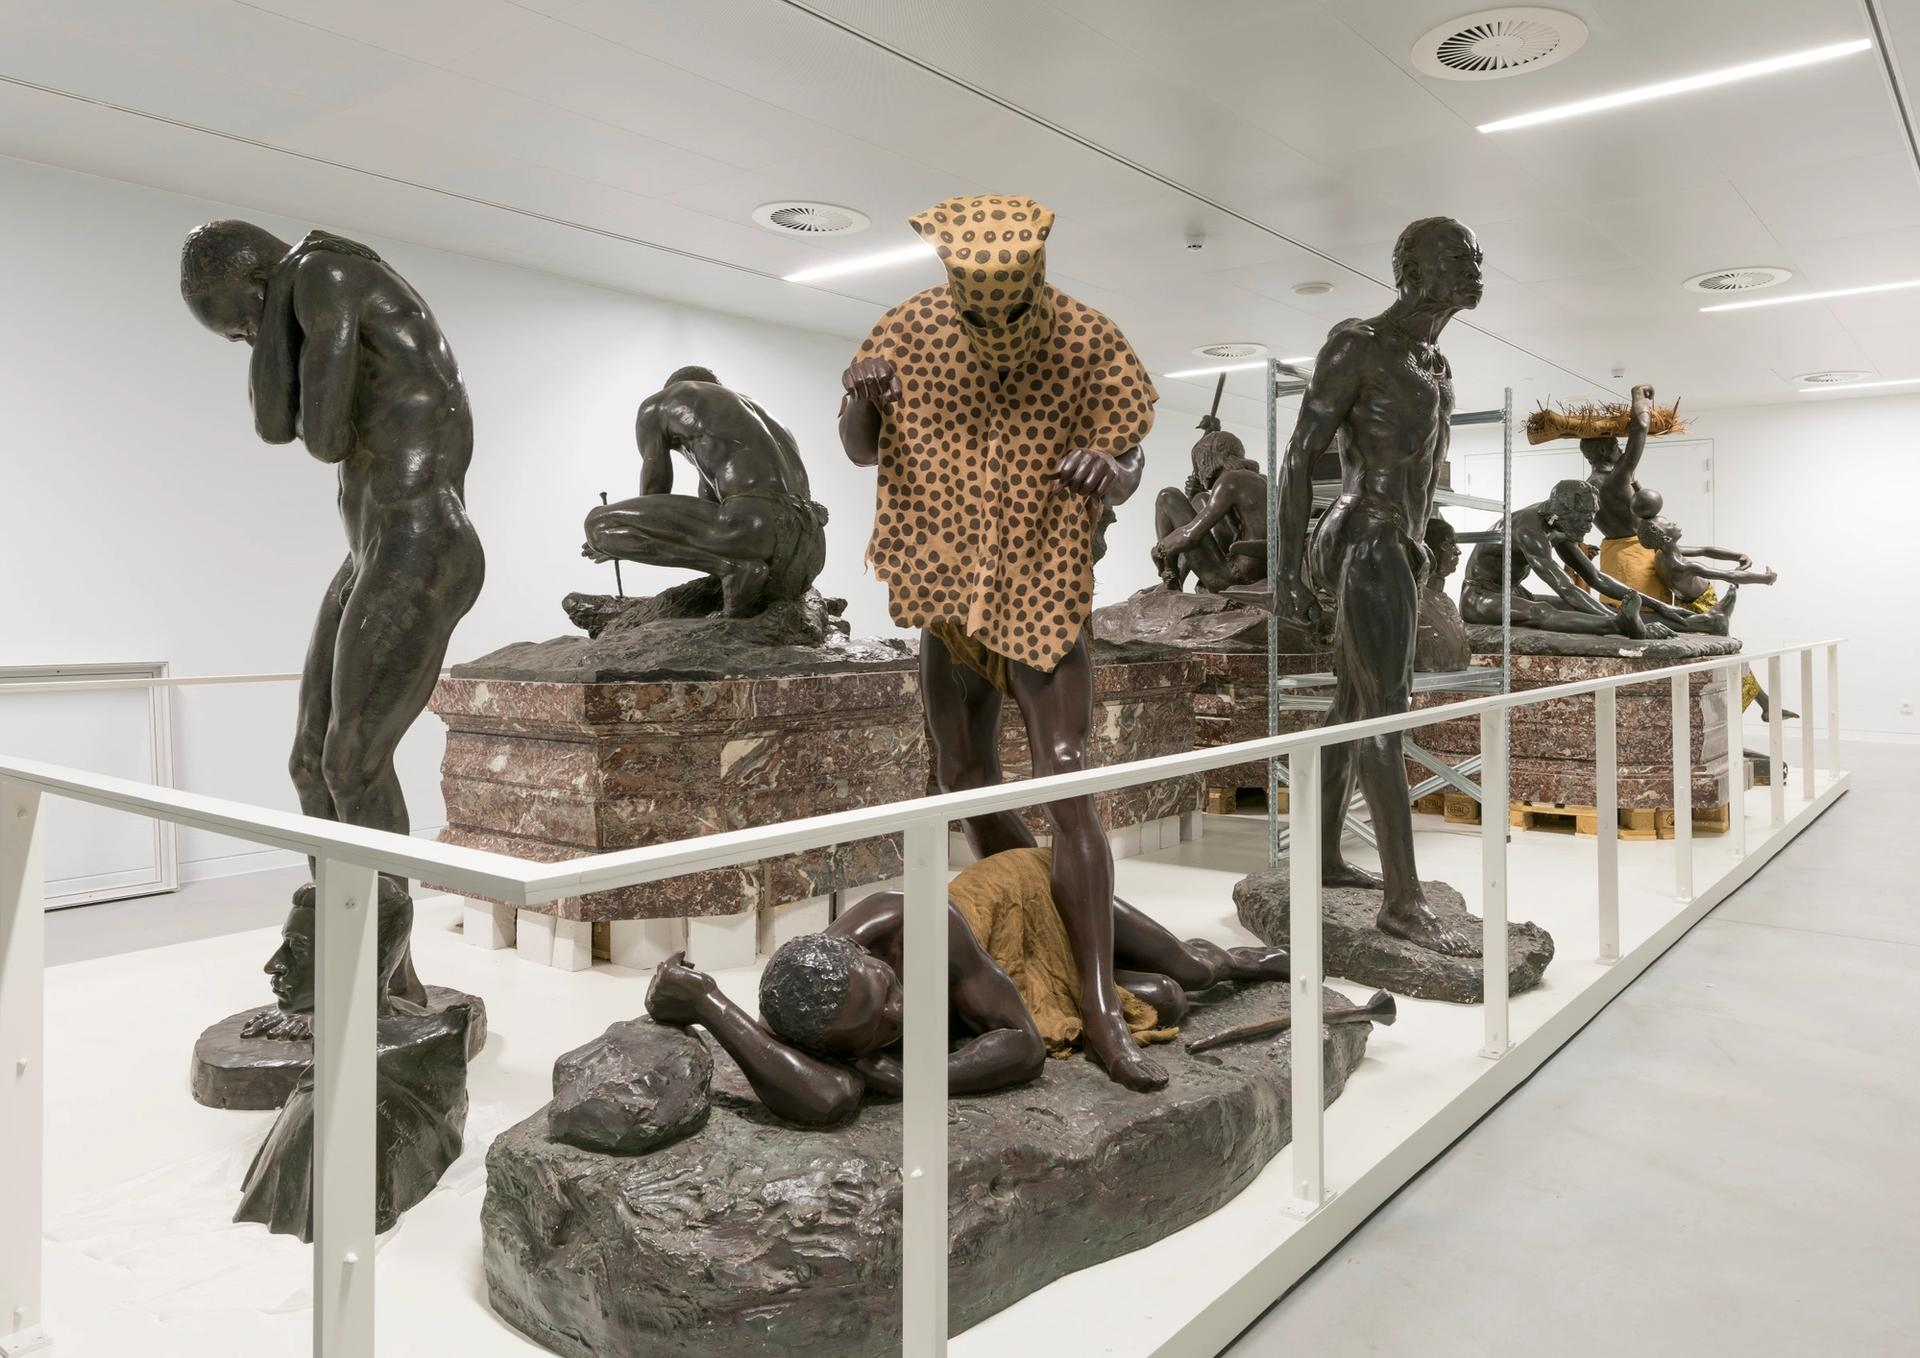 These statues are considered too overtly racist to be shown in the museum's main galleries and are now on display in the basement © RMCA, Tervuren, photo Jo Van de Vijver